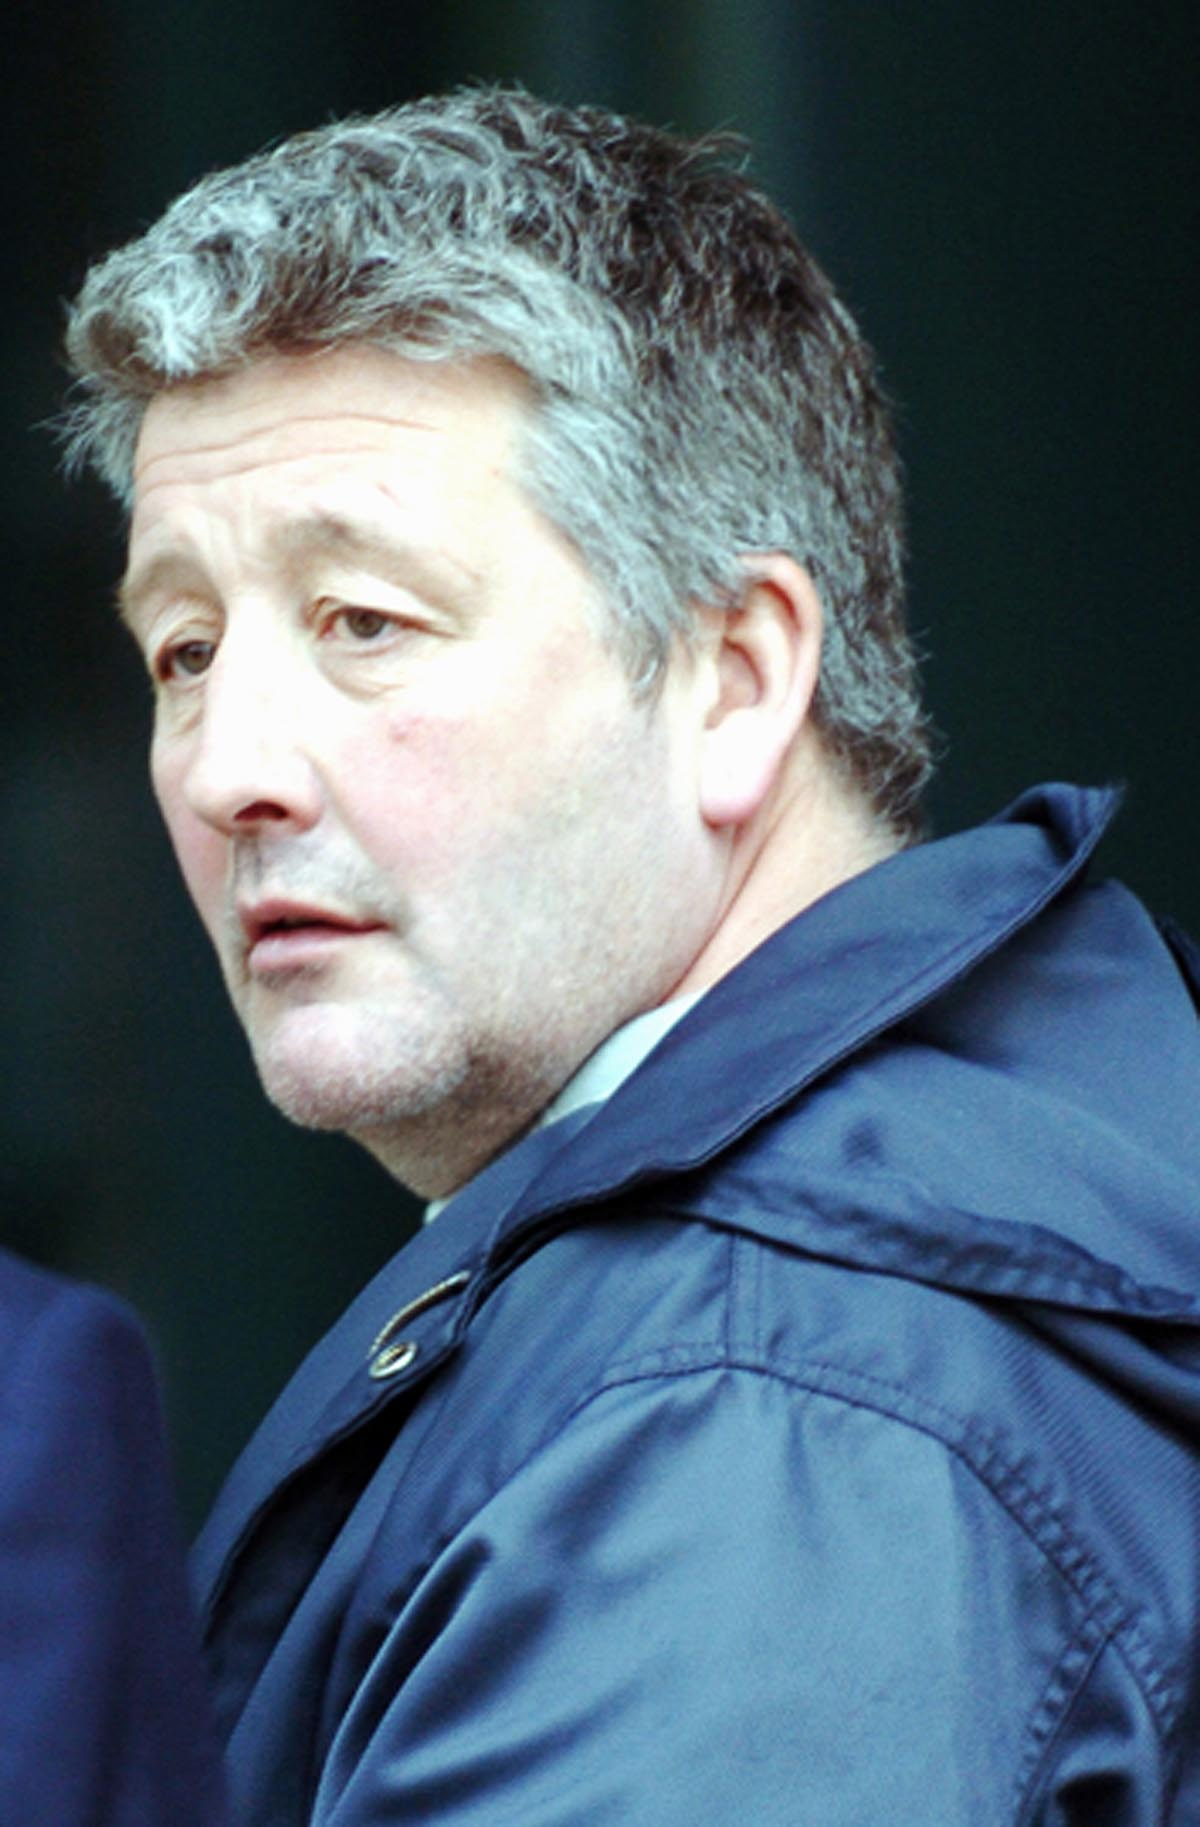 Roofer Simon Fielding could face a jail sentence after he admitted four offences